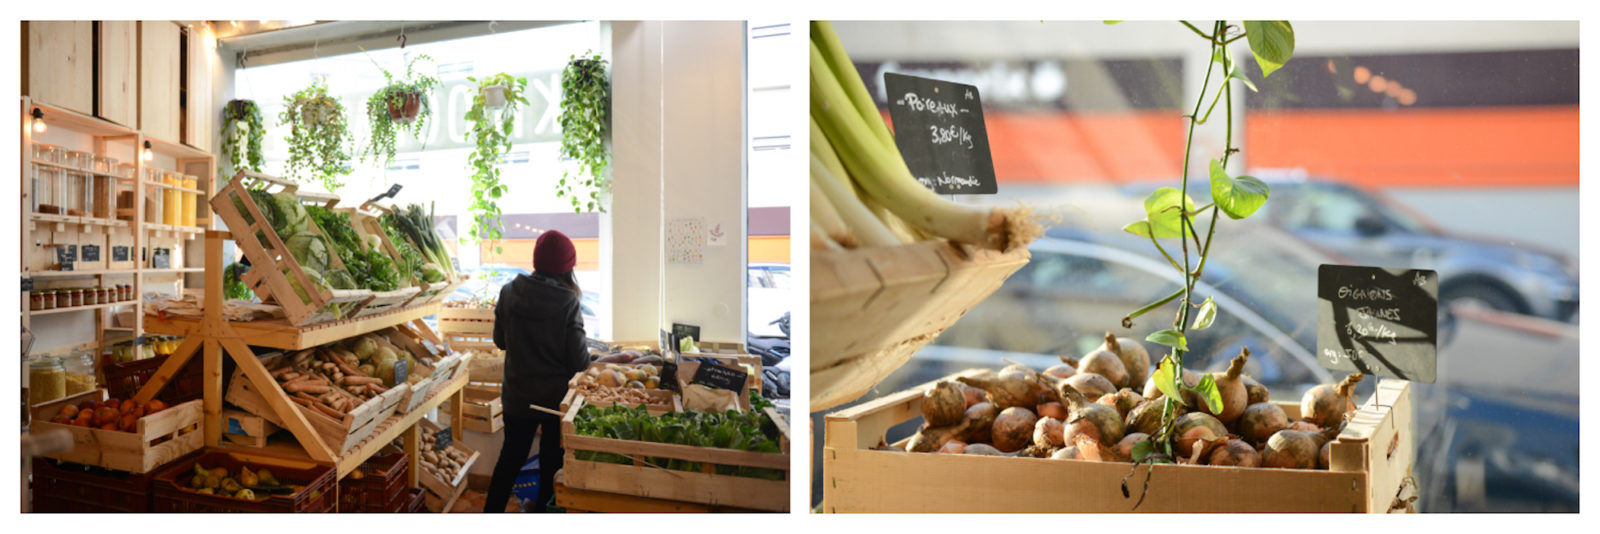 Crates of fresh vegetables at L'Epicerie Kilogramme, a zero-waste, bulk-buying food store in Paris (left). A crate of onions in the window of L'Epicerie Kilogramme grocery store in Paris (right).